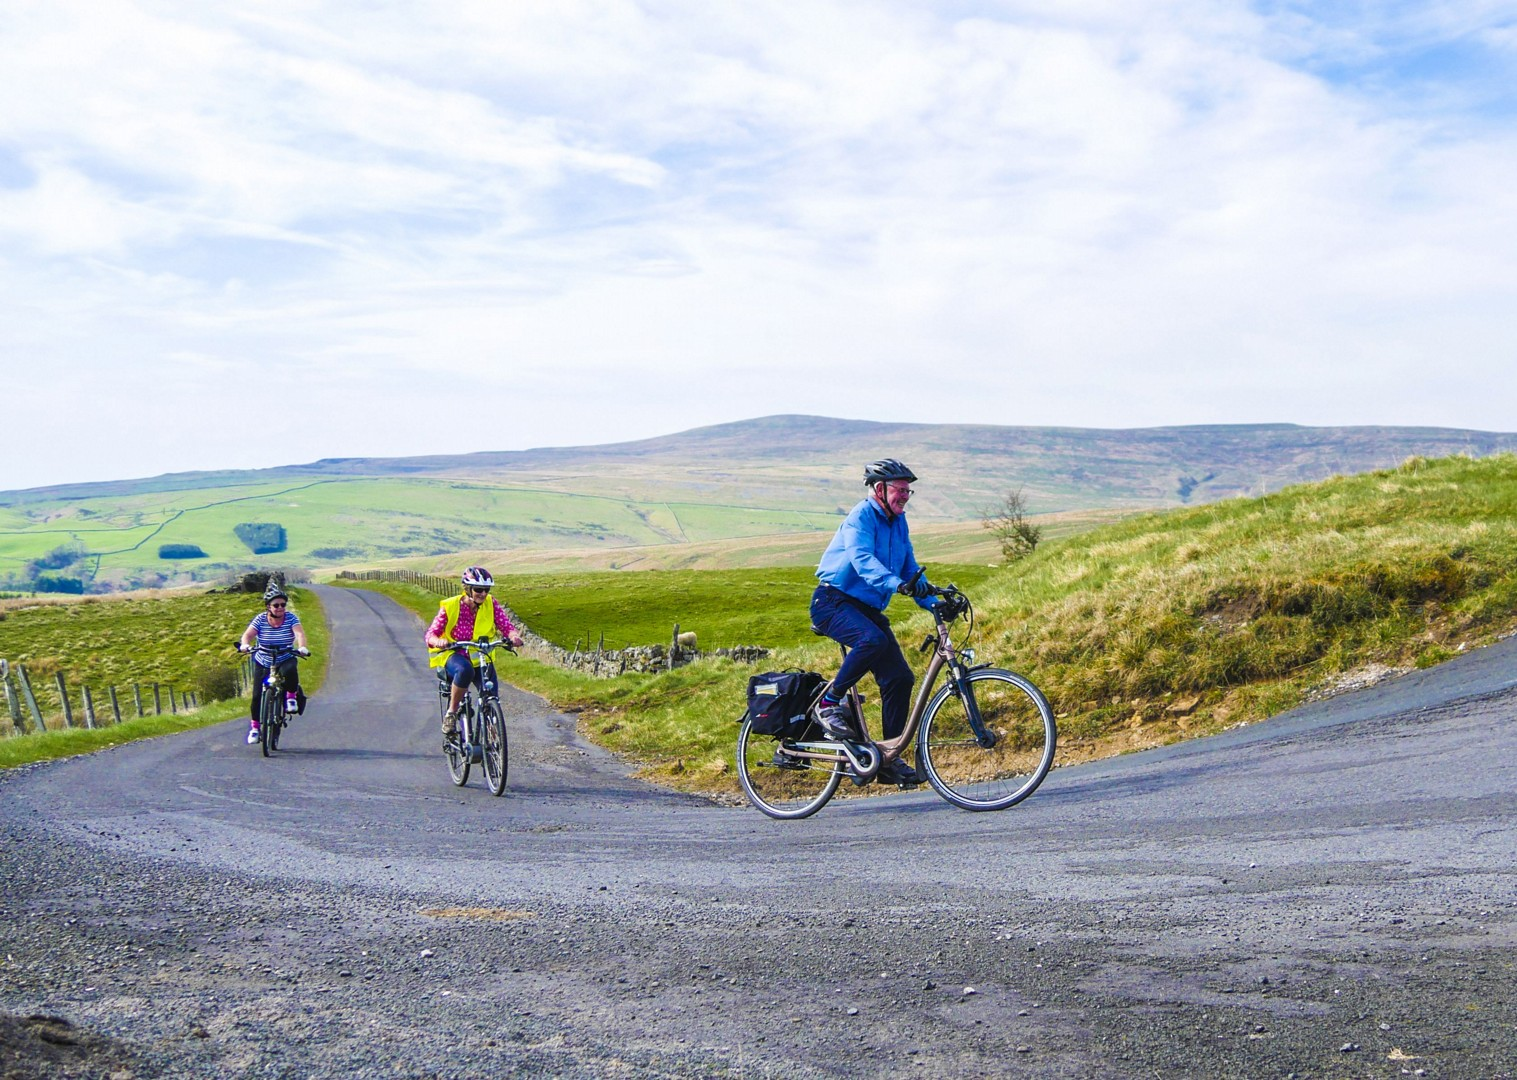 tour-for-all-ages-skedaddle-england-bike-holiday-amazing-experiences.jpg - UK - C2C - Coast to Coast 5 Days Cycling - Self-Guided Leisure Cycling Holiday - Leisure Cycling